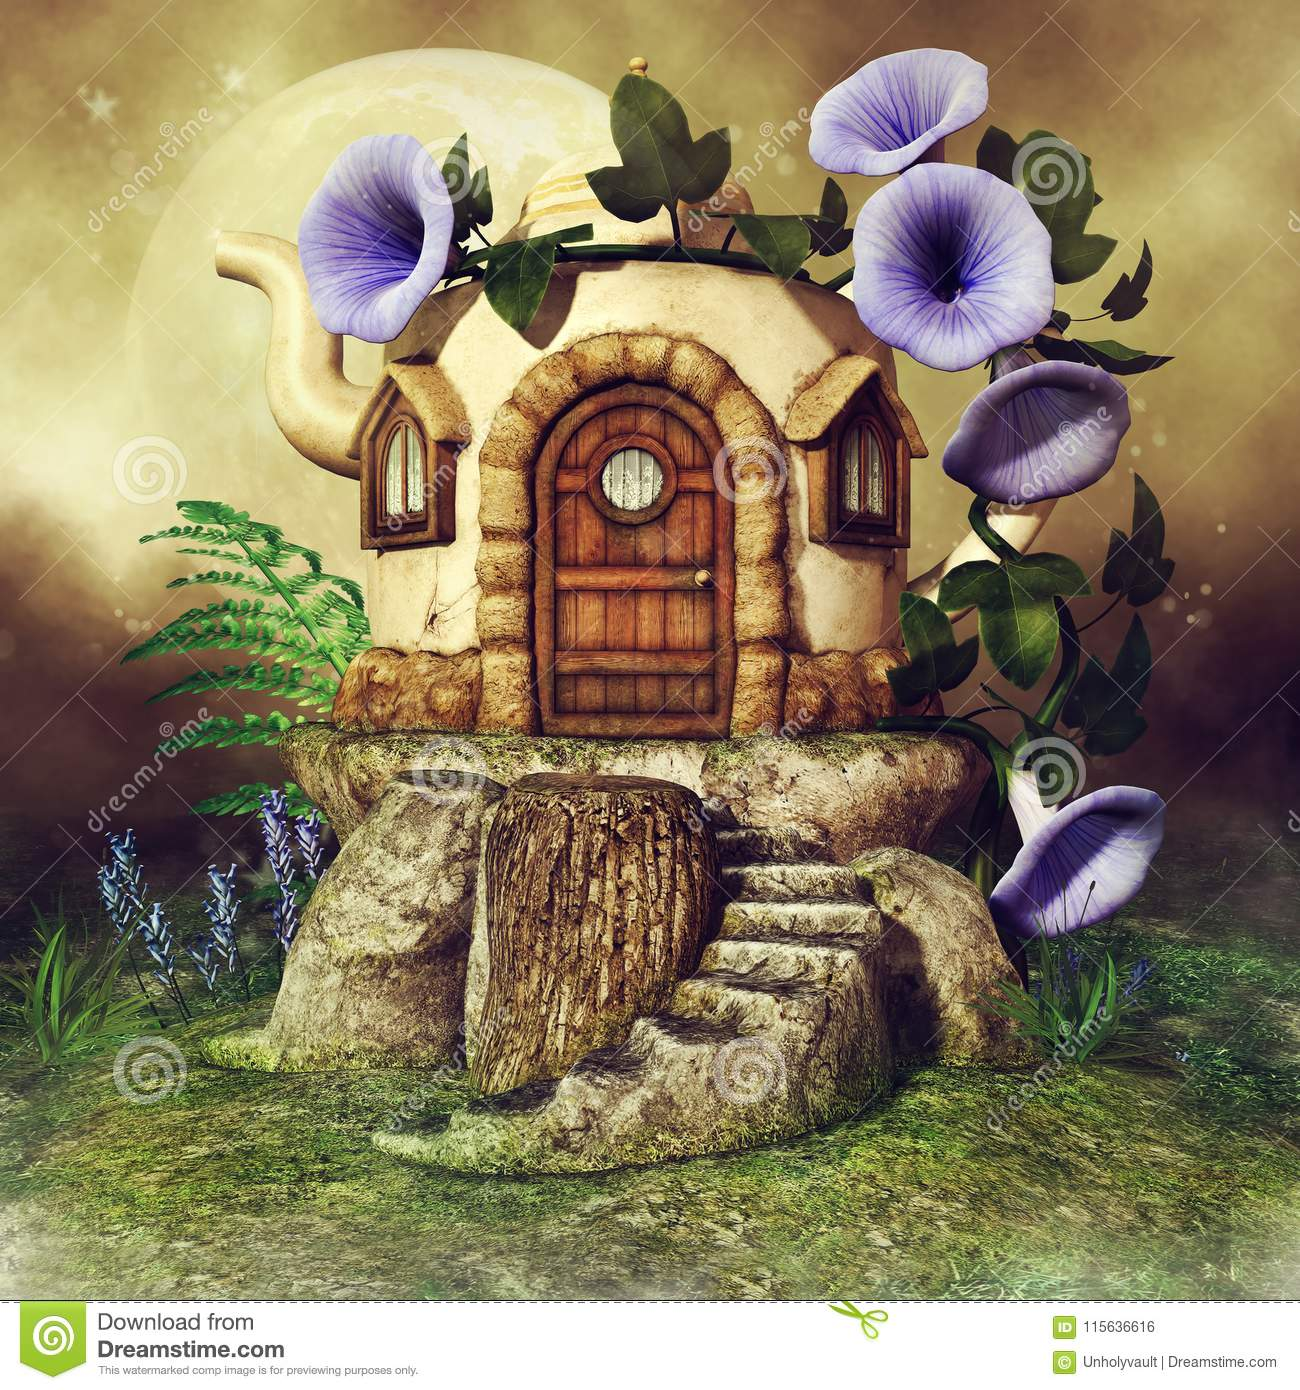 Teapot house with purple flowers